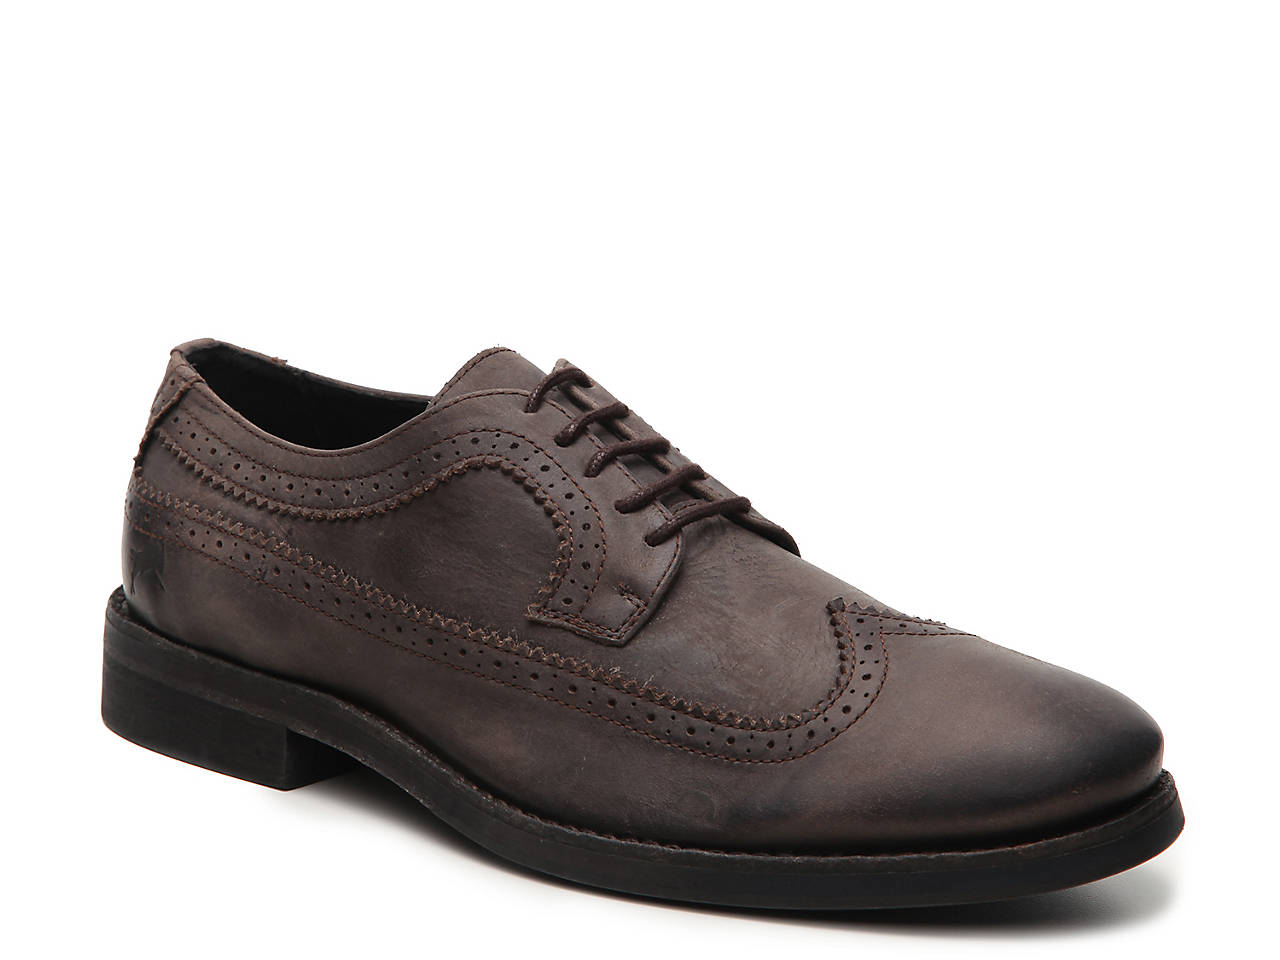 Free Shipping For Cheap Buy Cheap Fast Delivery Star Brogue Wingtip Leather Oxfords Discount Visa Payment View Cheap Supply UBdslxlA